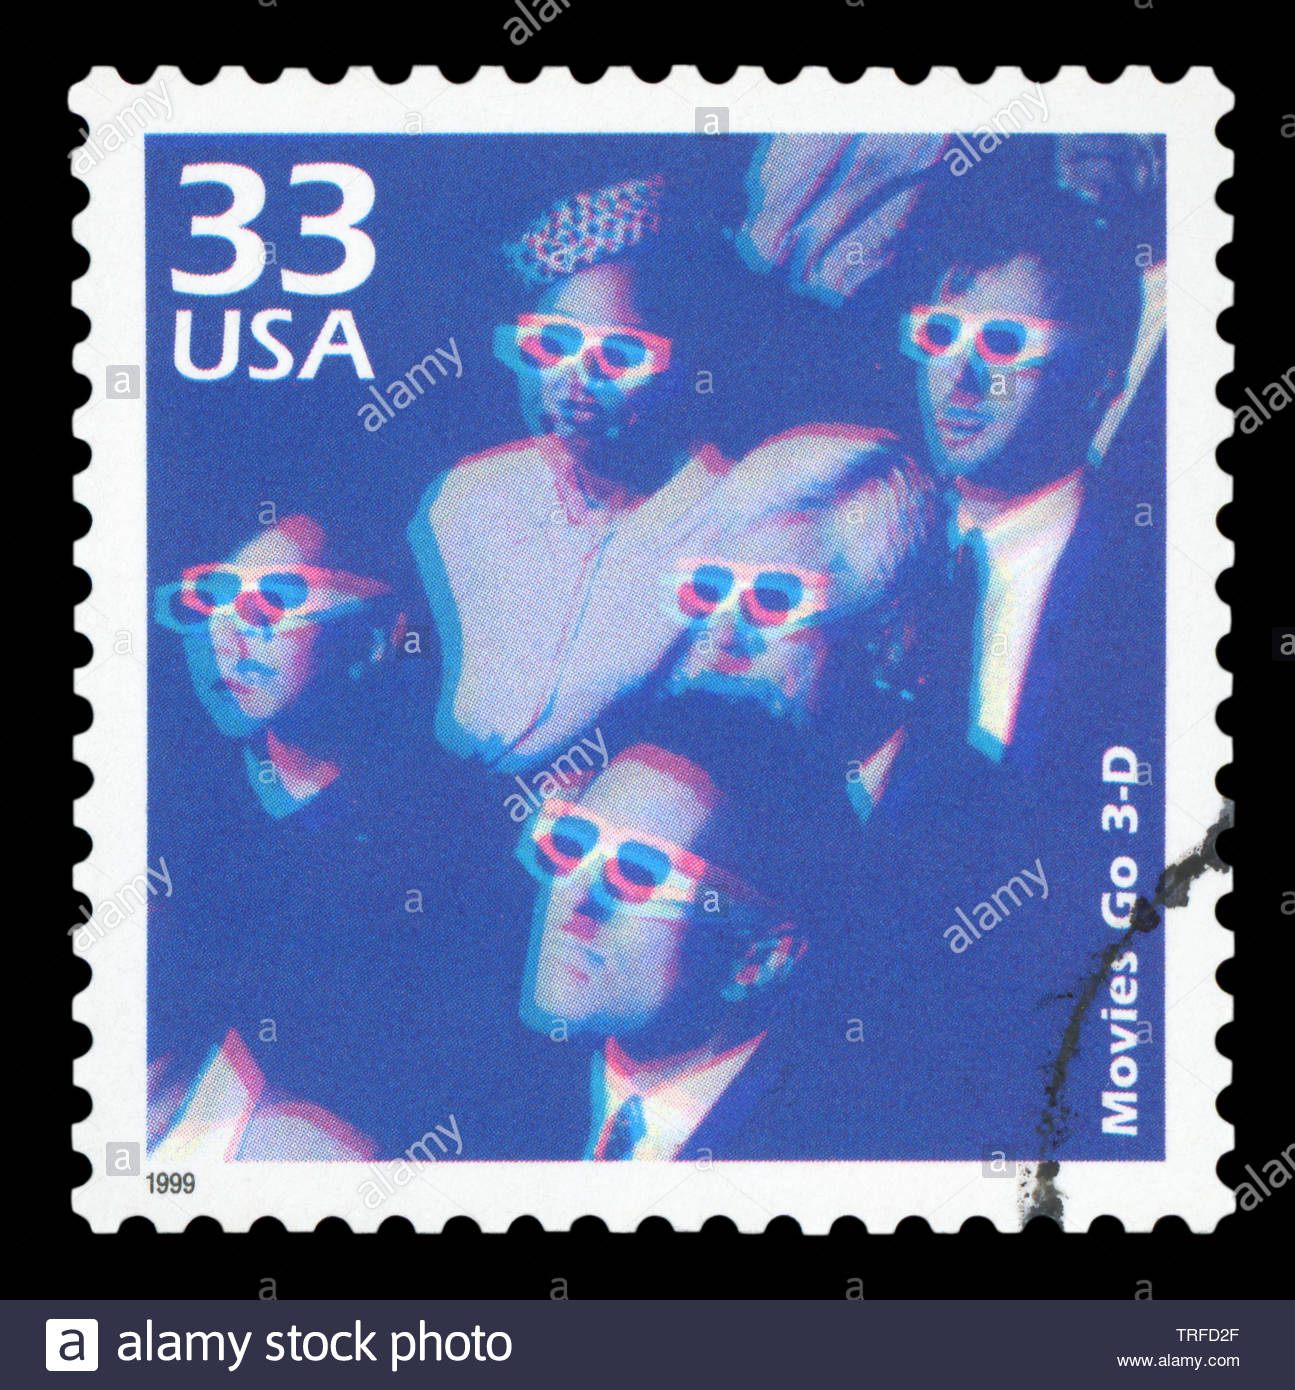 UNITED STATES OF AMERICA, CIRCA 1999: a postage stamp printed in USA showing an image of people watching a 3D movie, circa 1999. - Stock Image